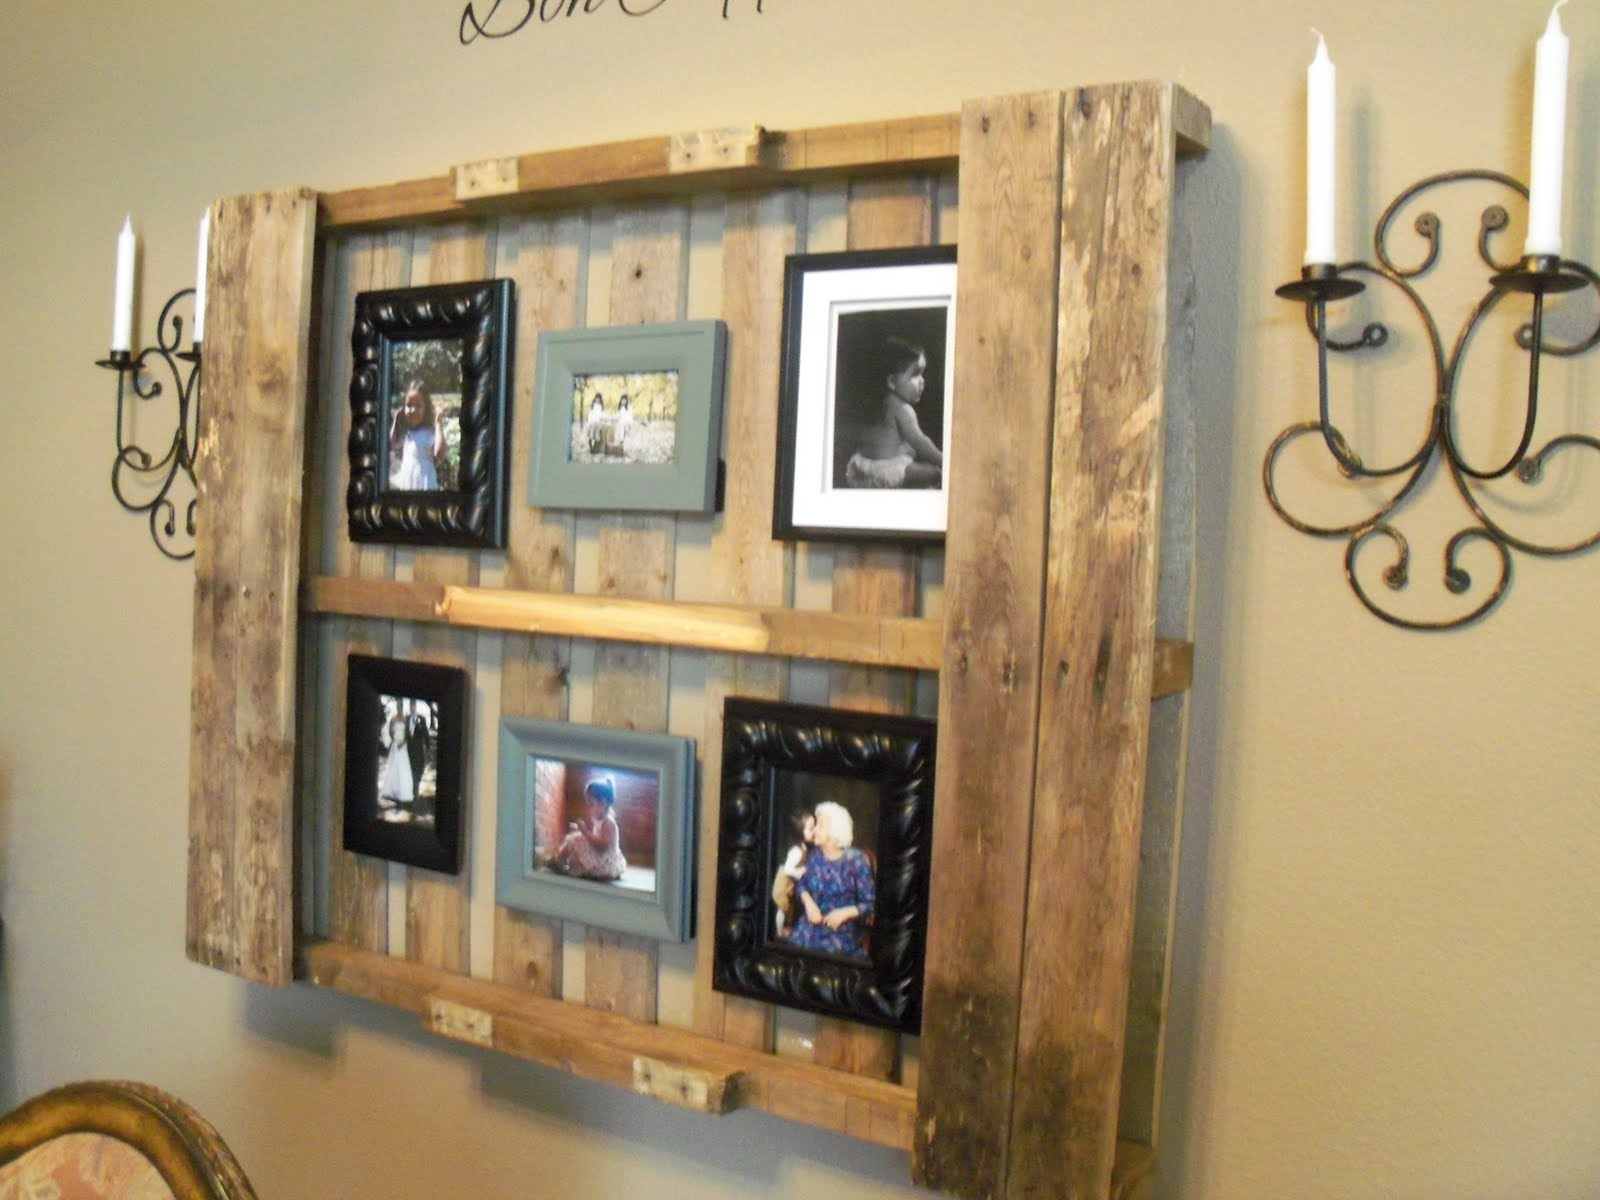 The baeza blog pallet decor for Pallet ideas